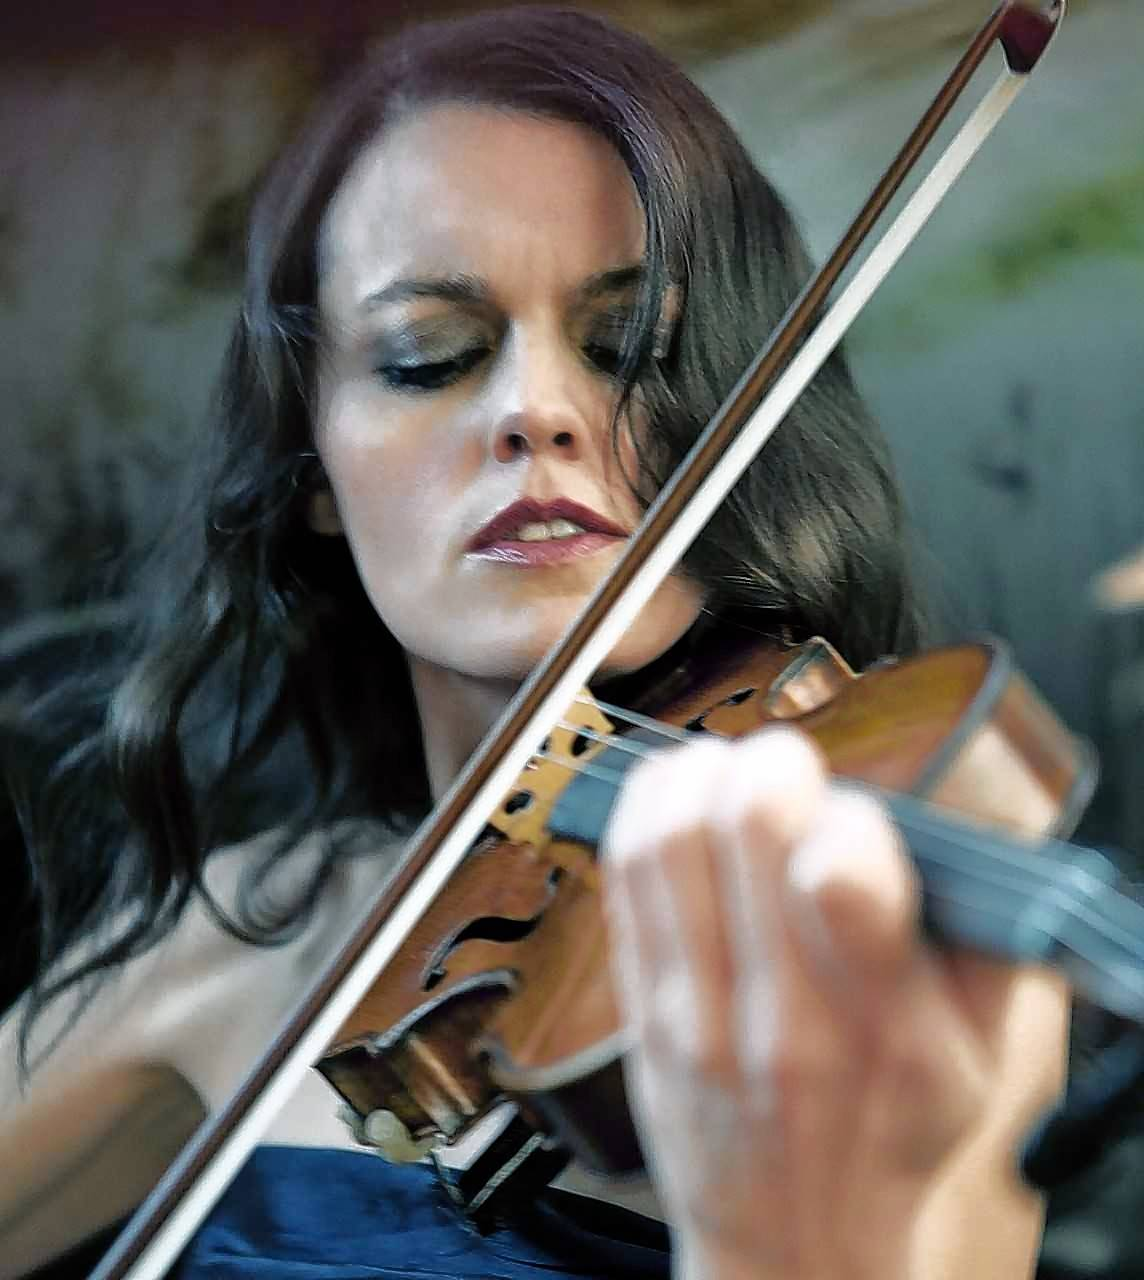 Elgin Symphony Orchestra concertmaster Isabella Lippi will perform Anton Bruch's famous Violin Concerto No. 1 this month.